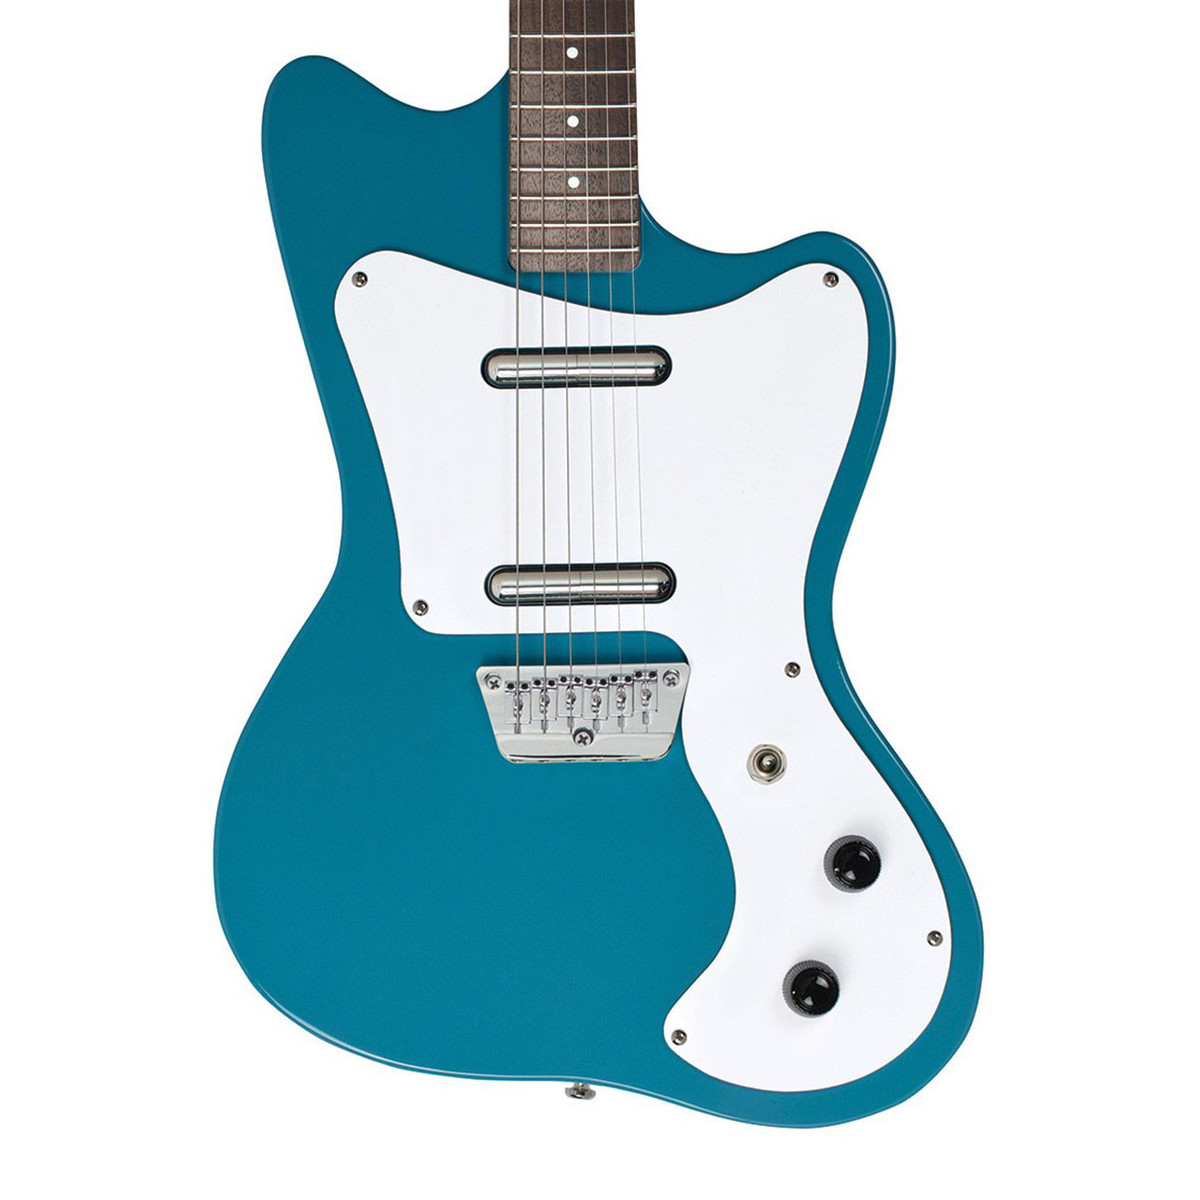 danelectro 67 offset electric guitar aqua at gear4music. Black Bedroom Furniture Sets. Home Design Ideas